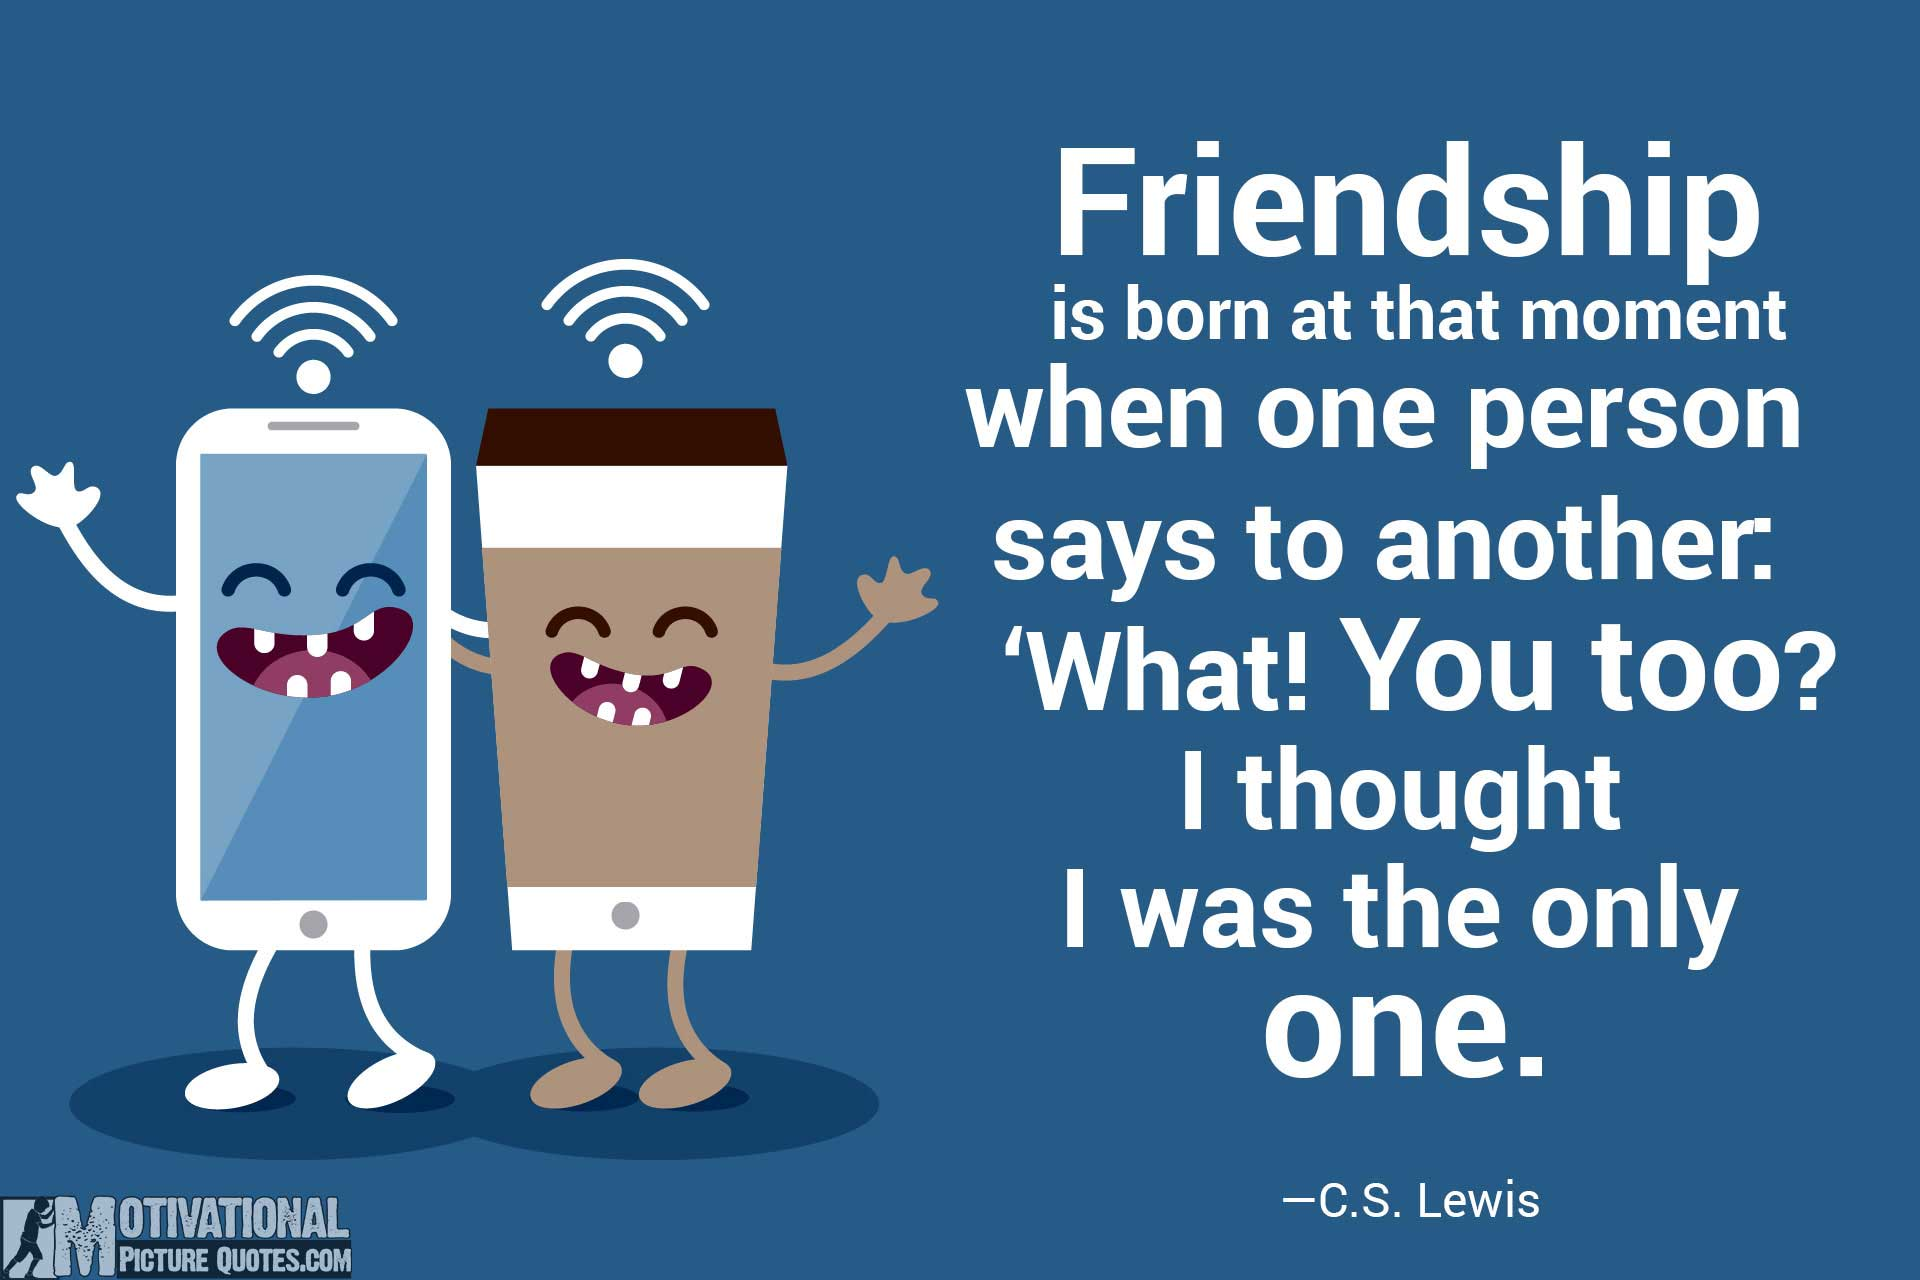 Quotes About Friendship Images 25 Inspirational Friendship Quotes Images  Free Download